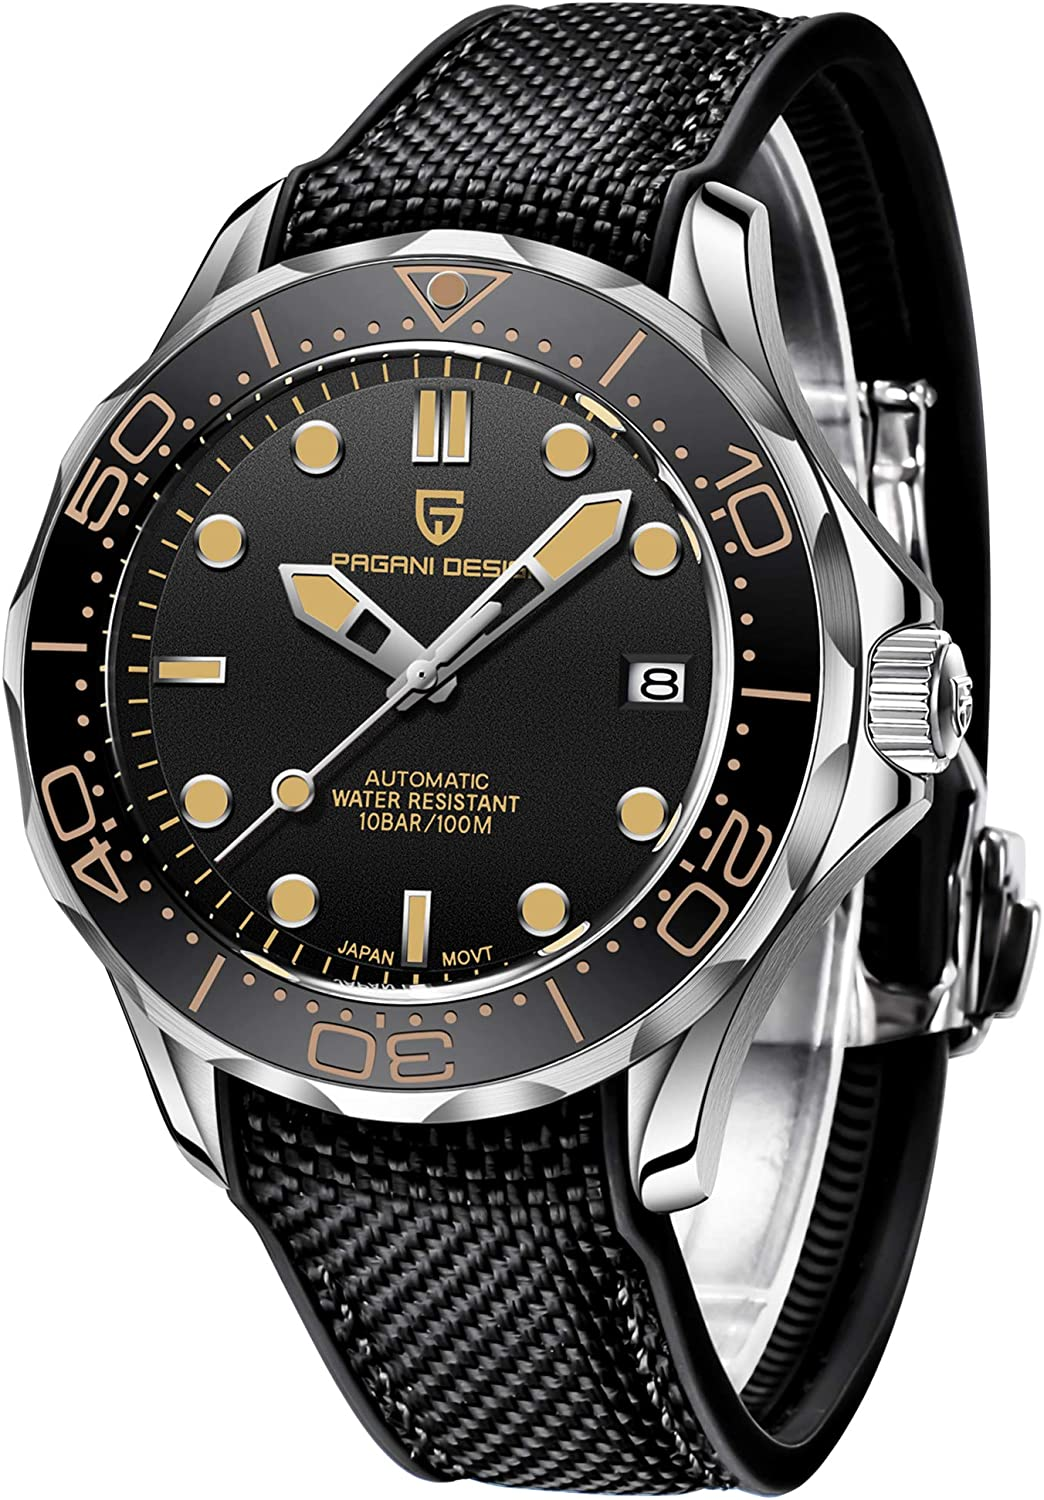 Pagani Design 007 Seamaster Automatic Diving Watches for Men Stainless Steel Band,...